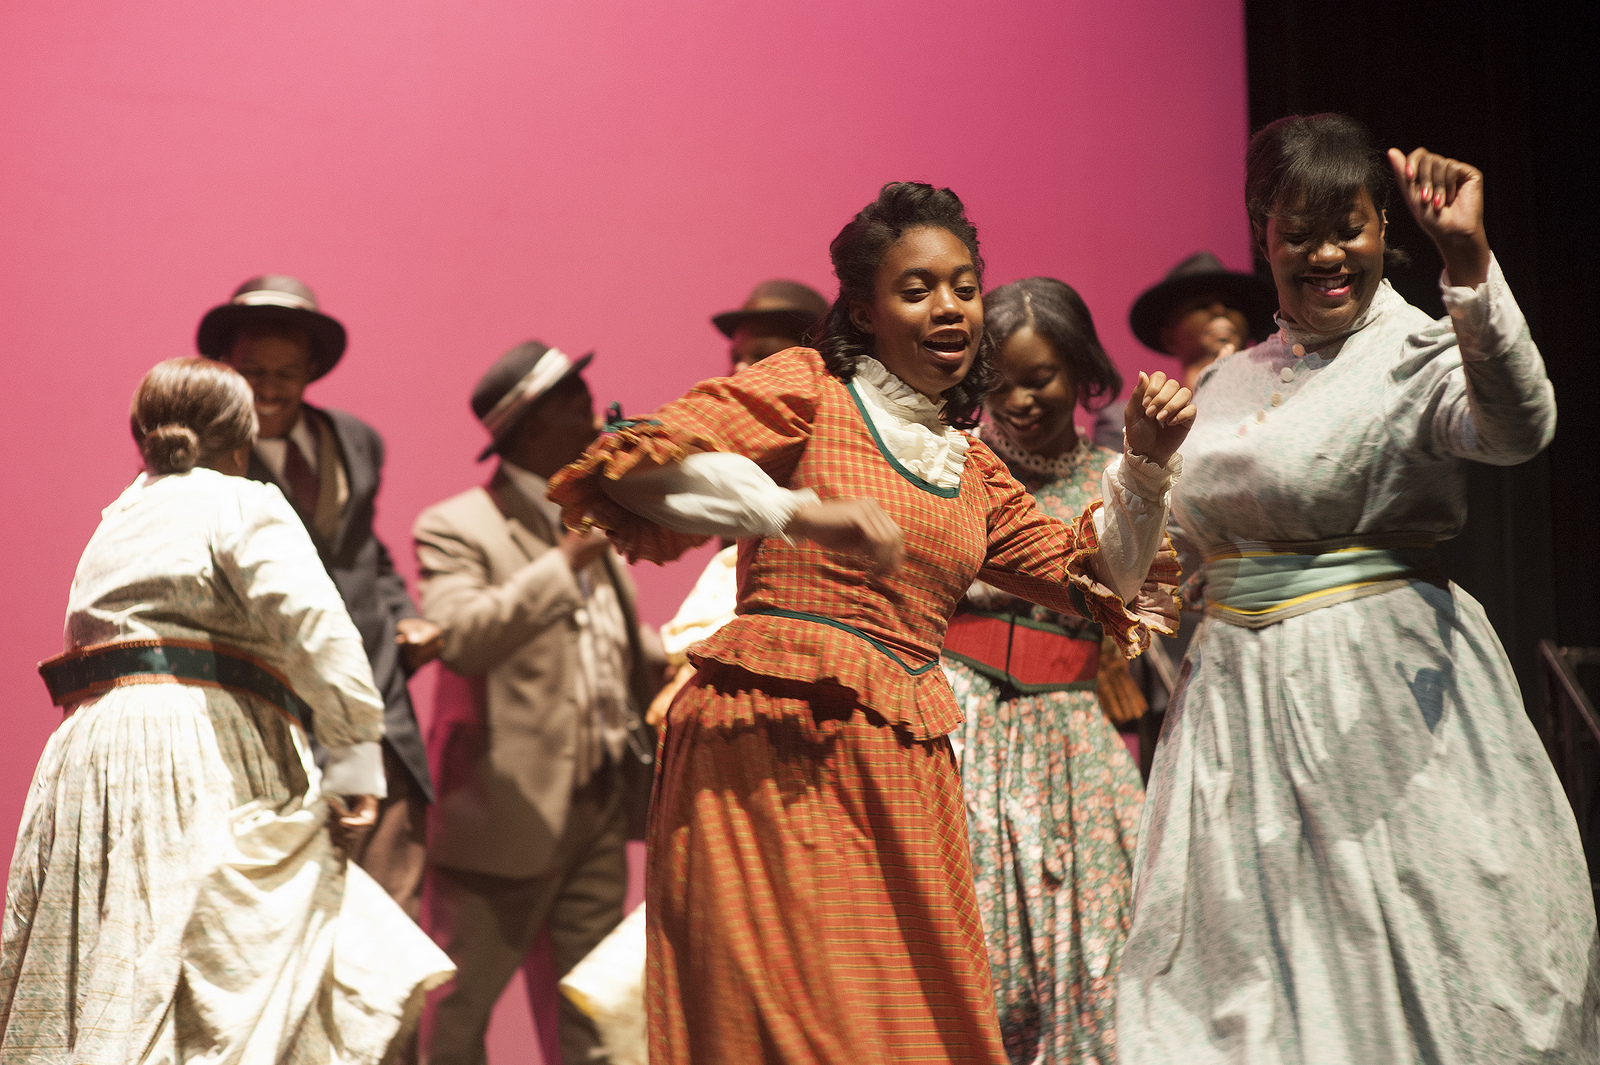 """From the Playhouse production of the musical """"Ragtime."""" Photo by Dwayne Green."""